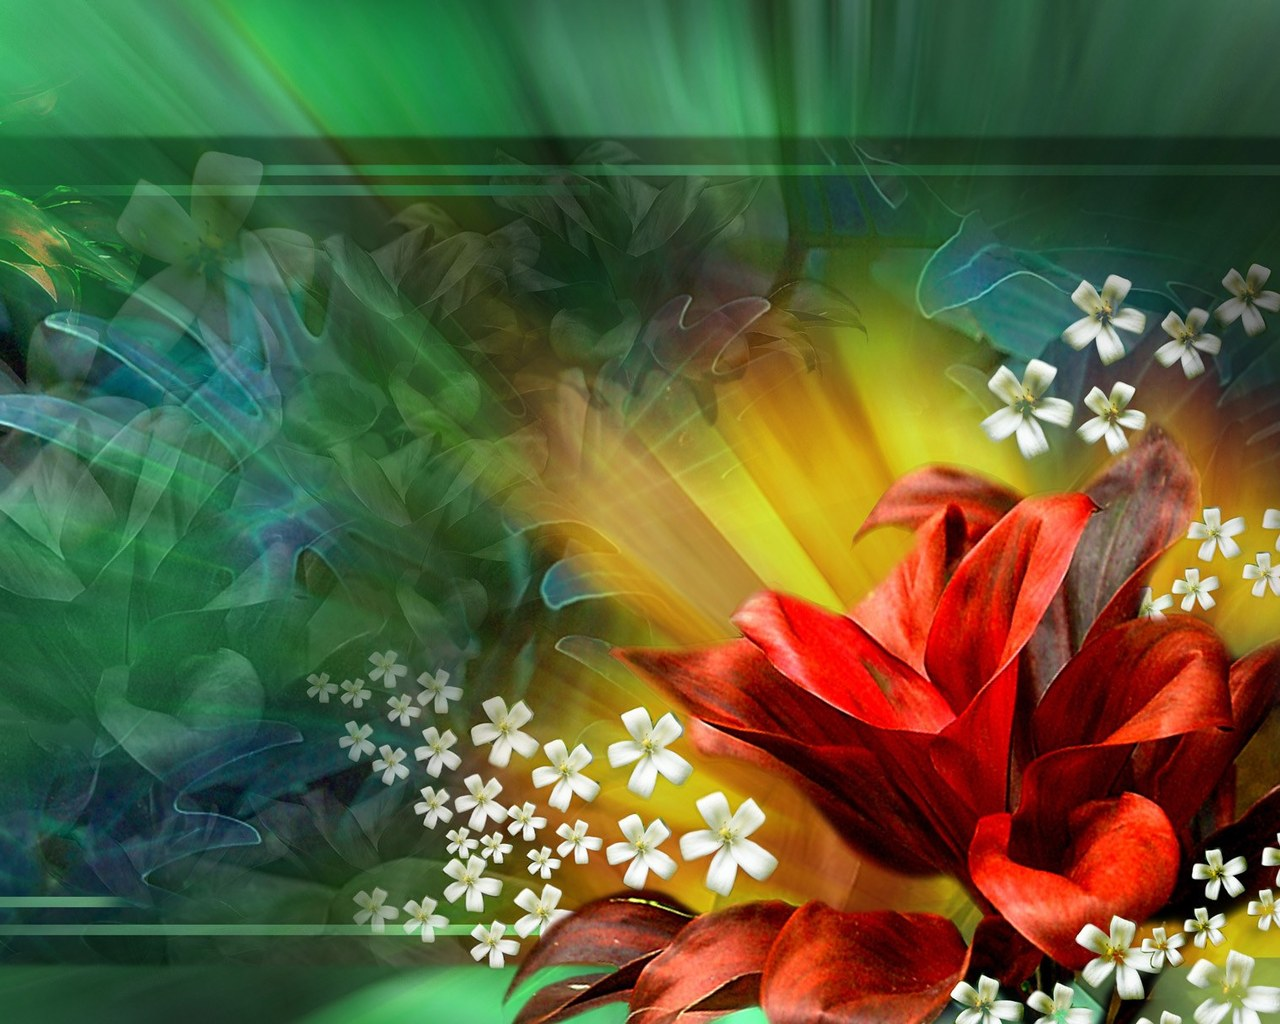 50 Wallpapers For Desktop Free Download On Wallpapersafari